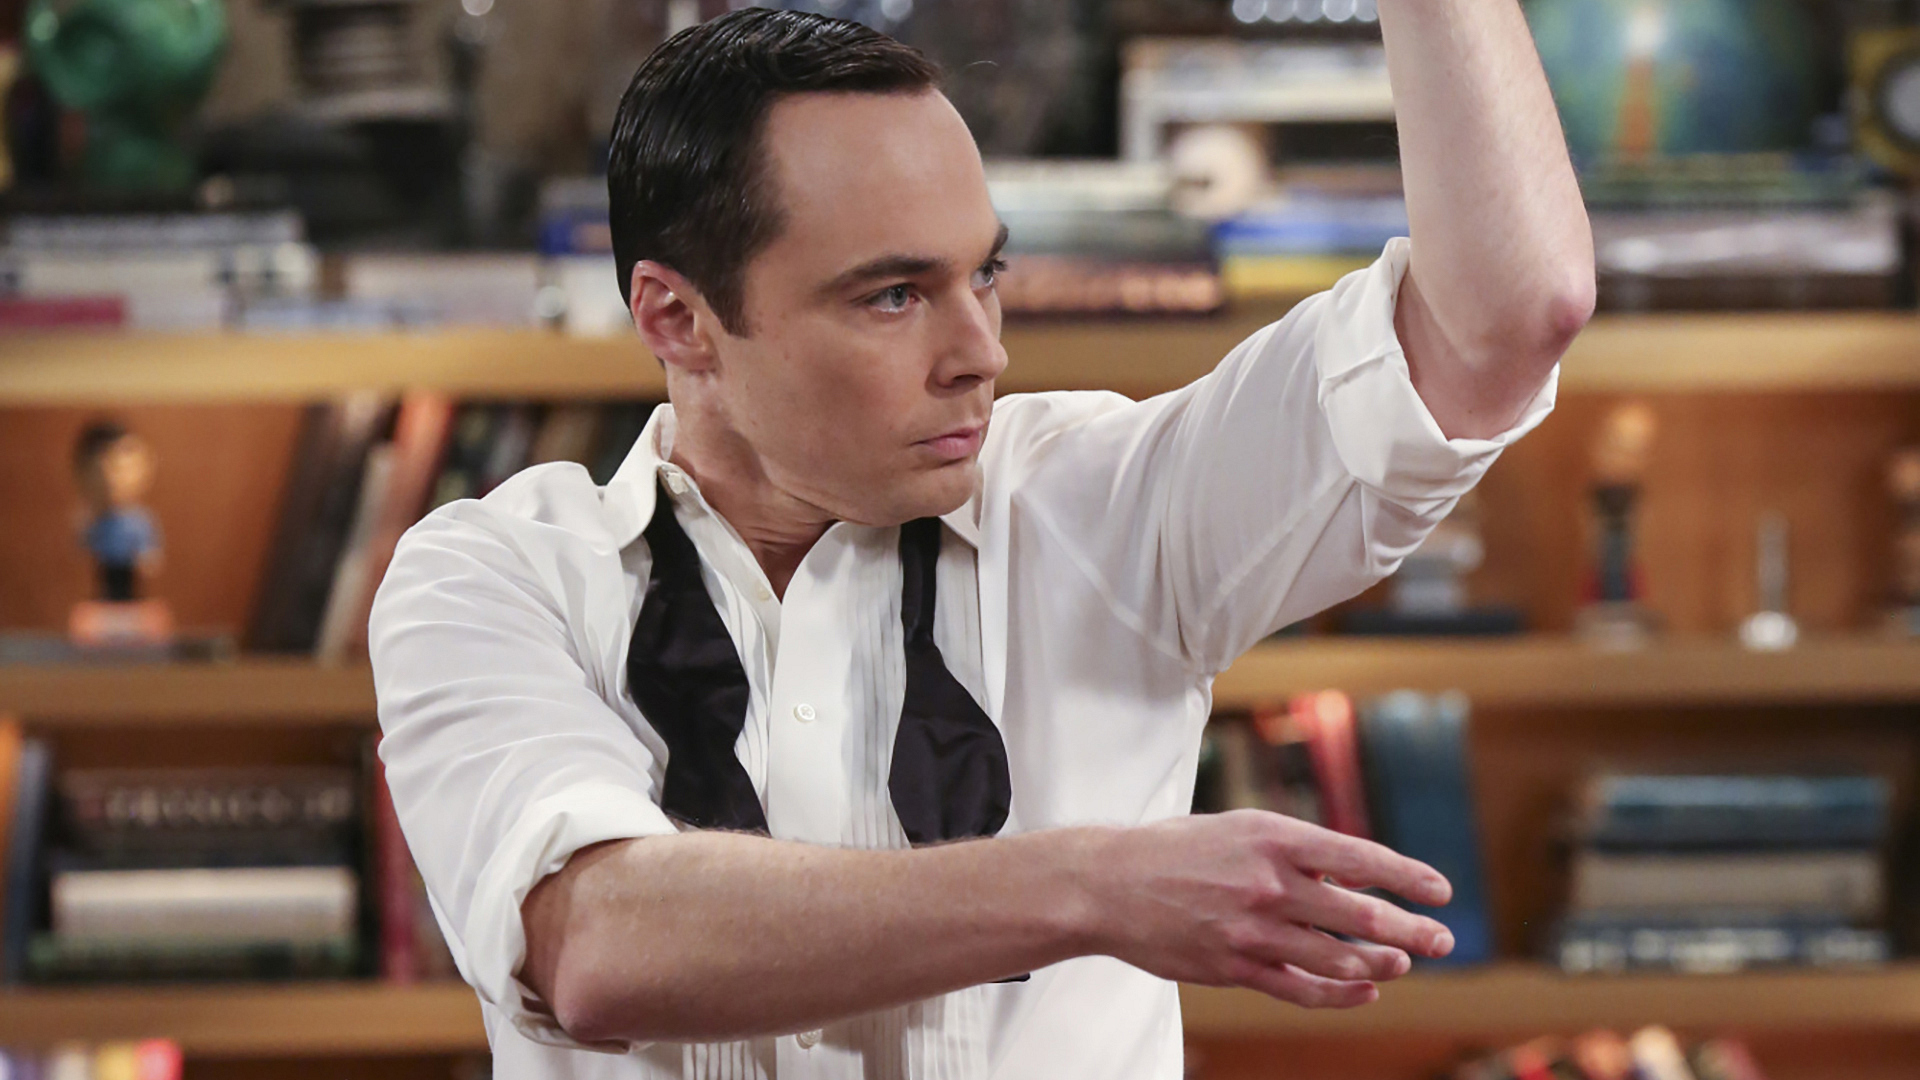 Sheldon attempts to woo his lady with a flamenco dance.